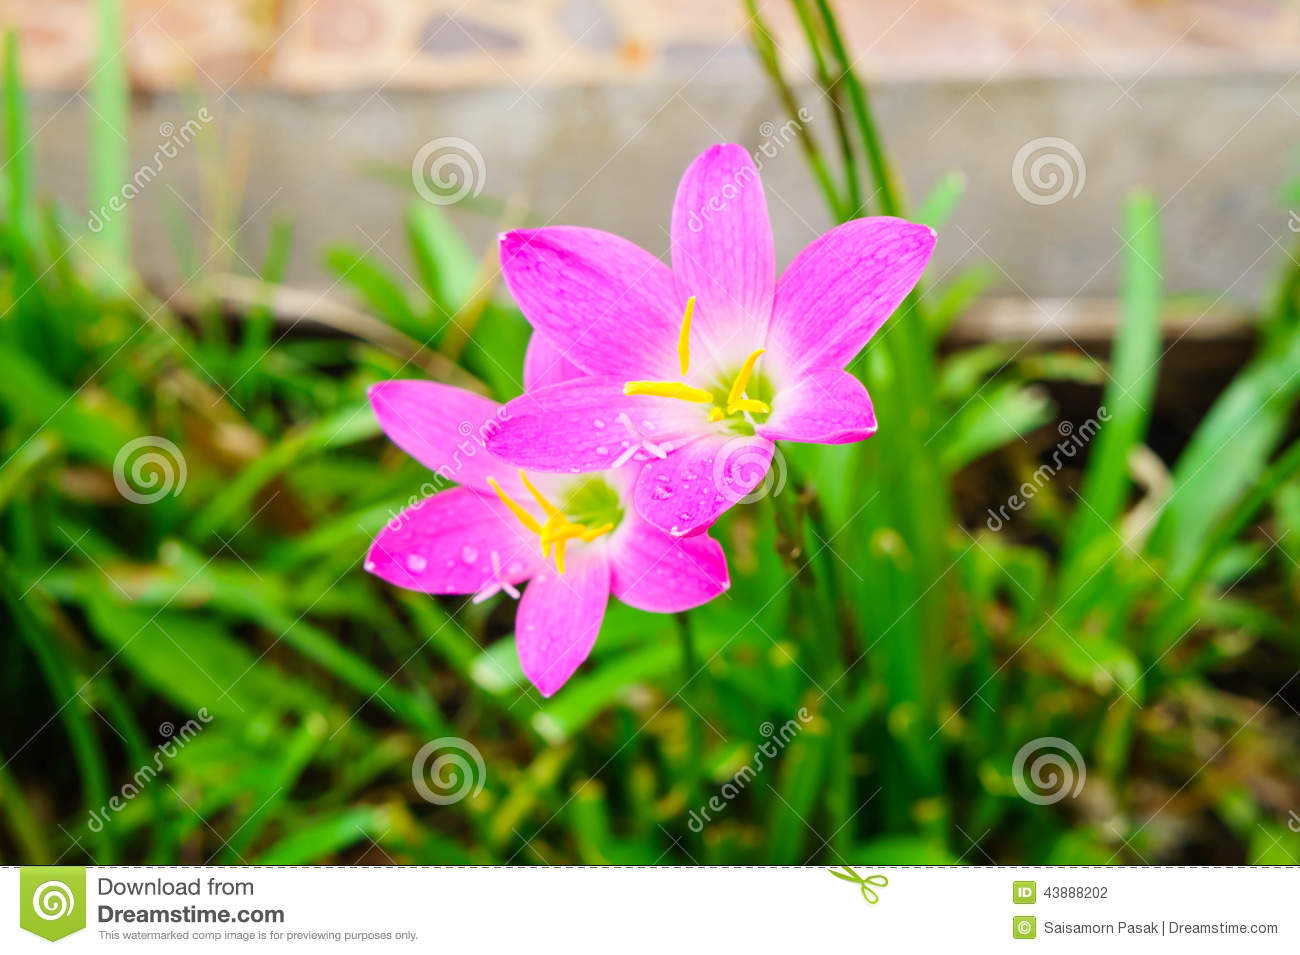 Pink Lily Rain Lily Flower Stock Photo Image Of Gardening 43888202